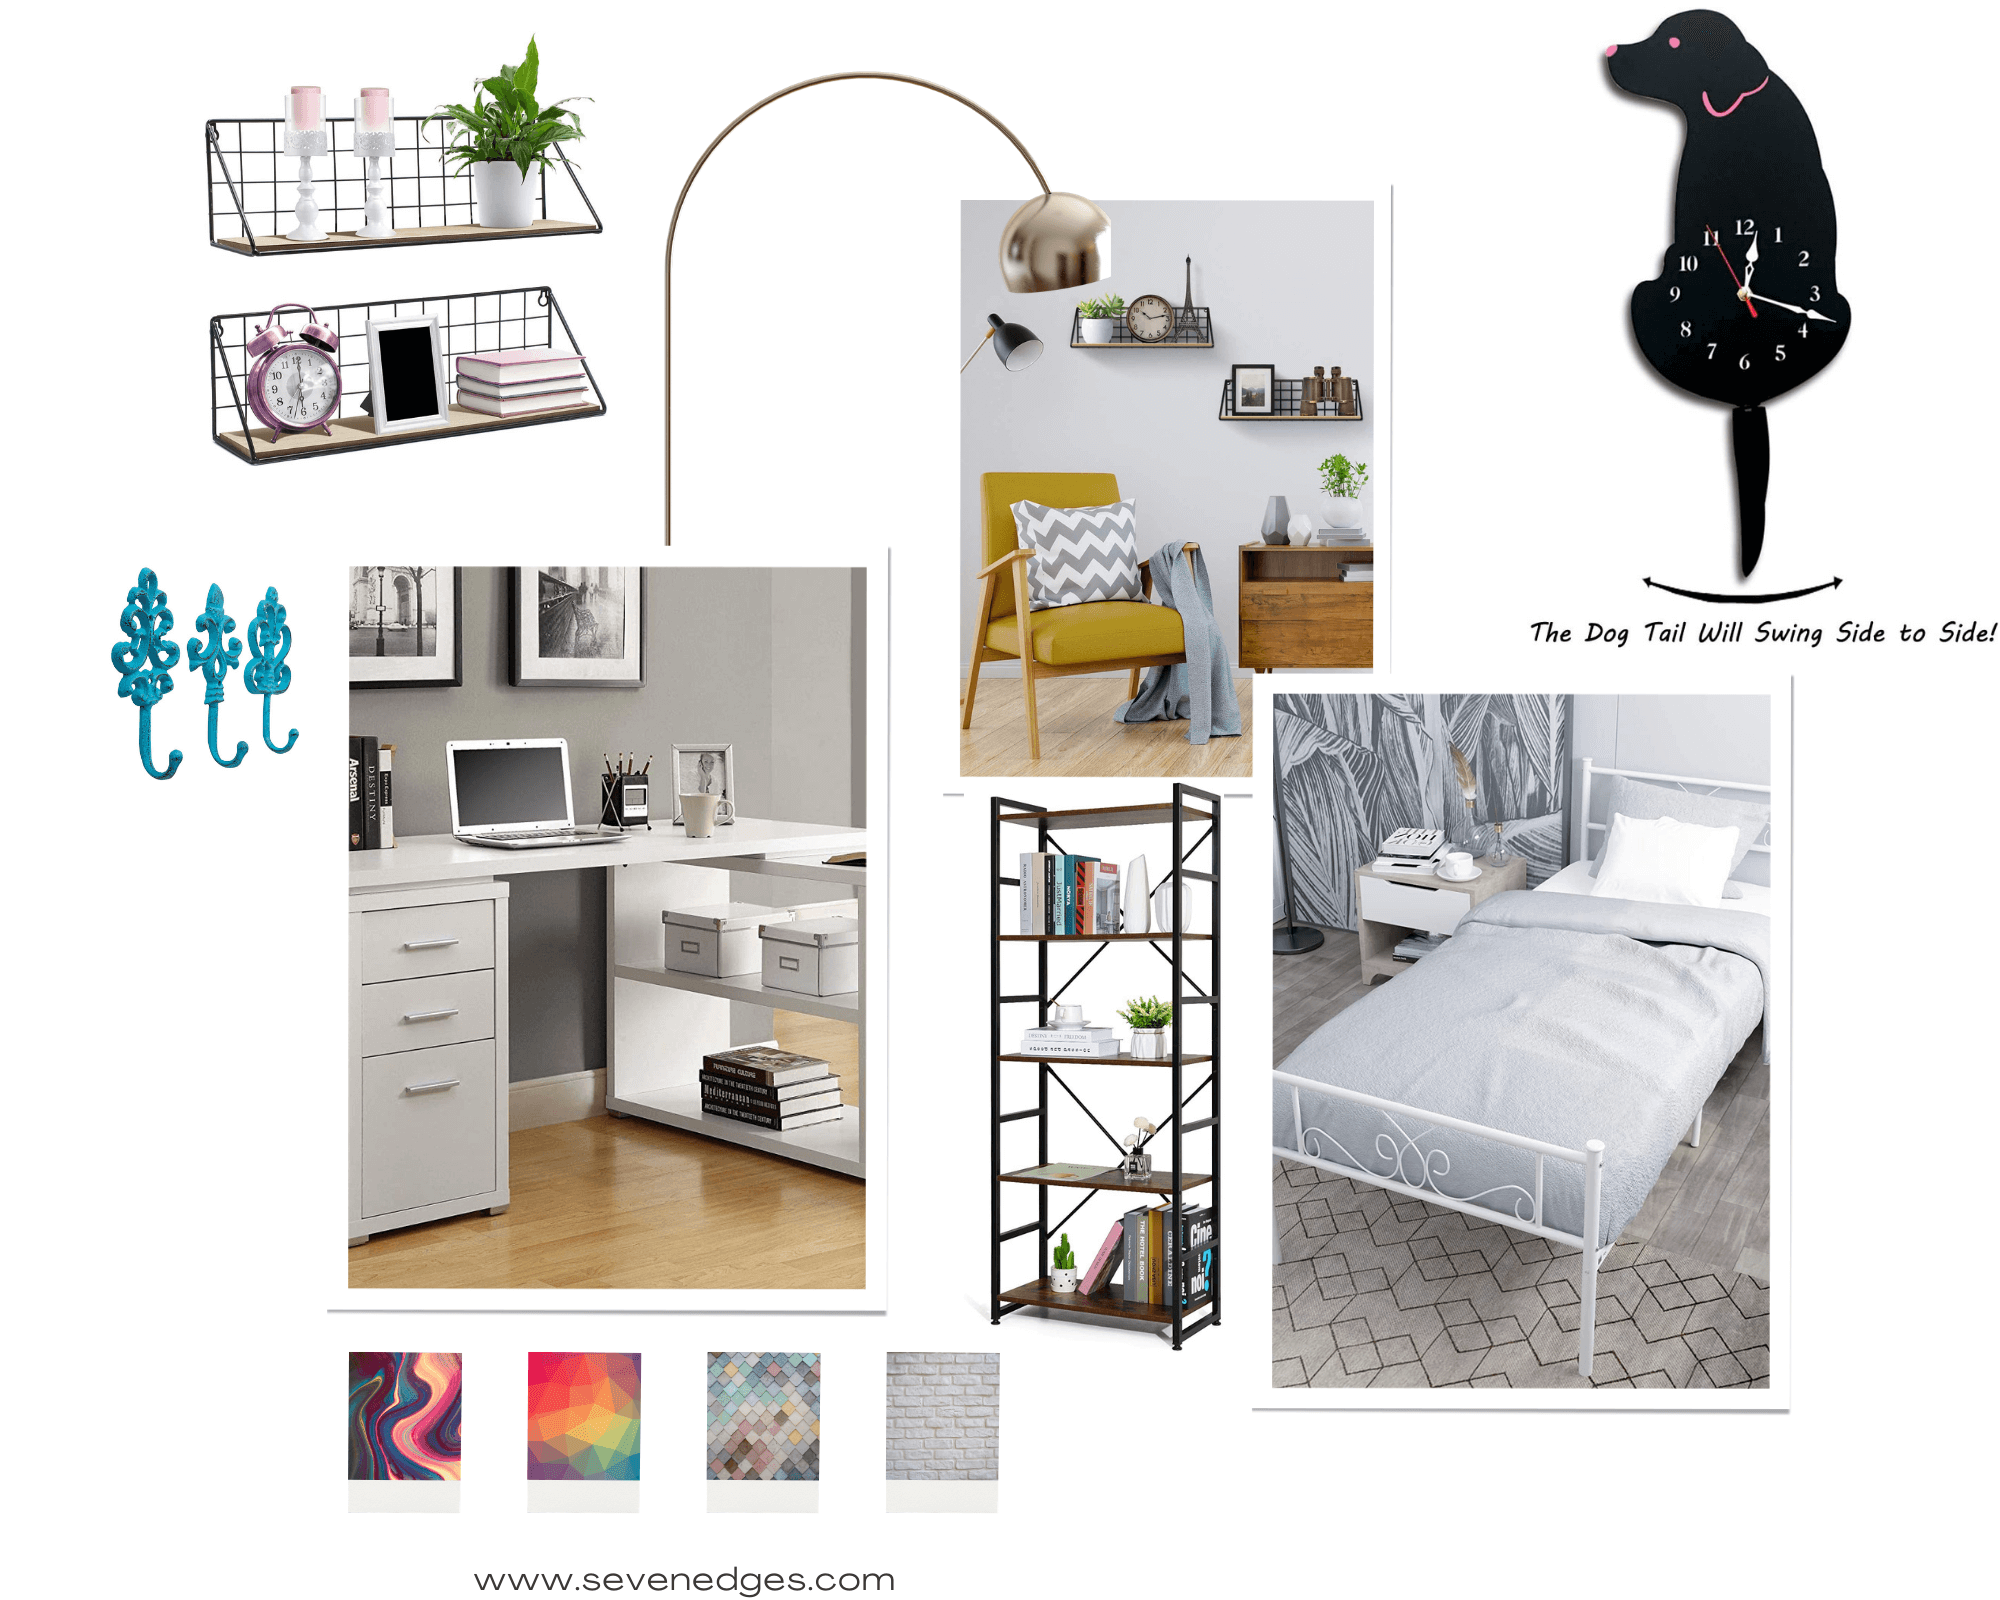 Boys and Girls Shared Room Ideas